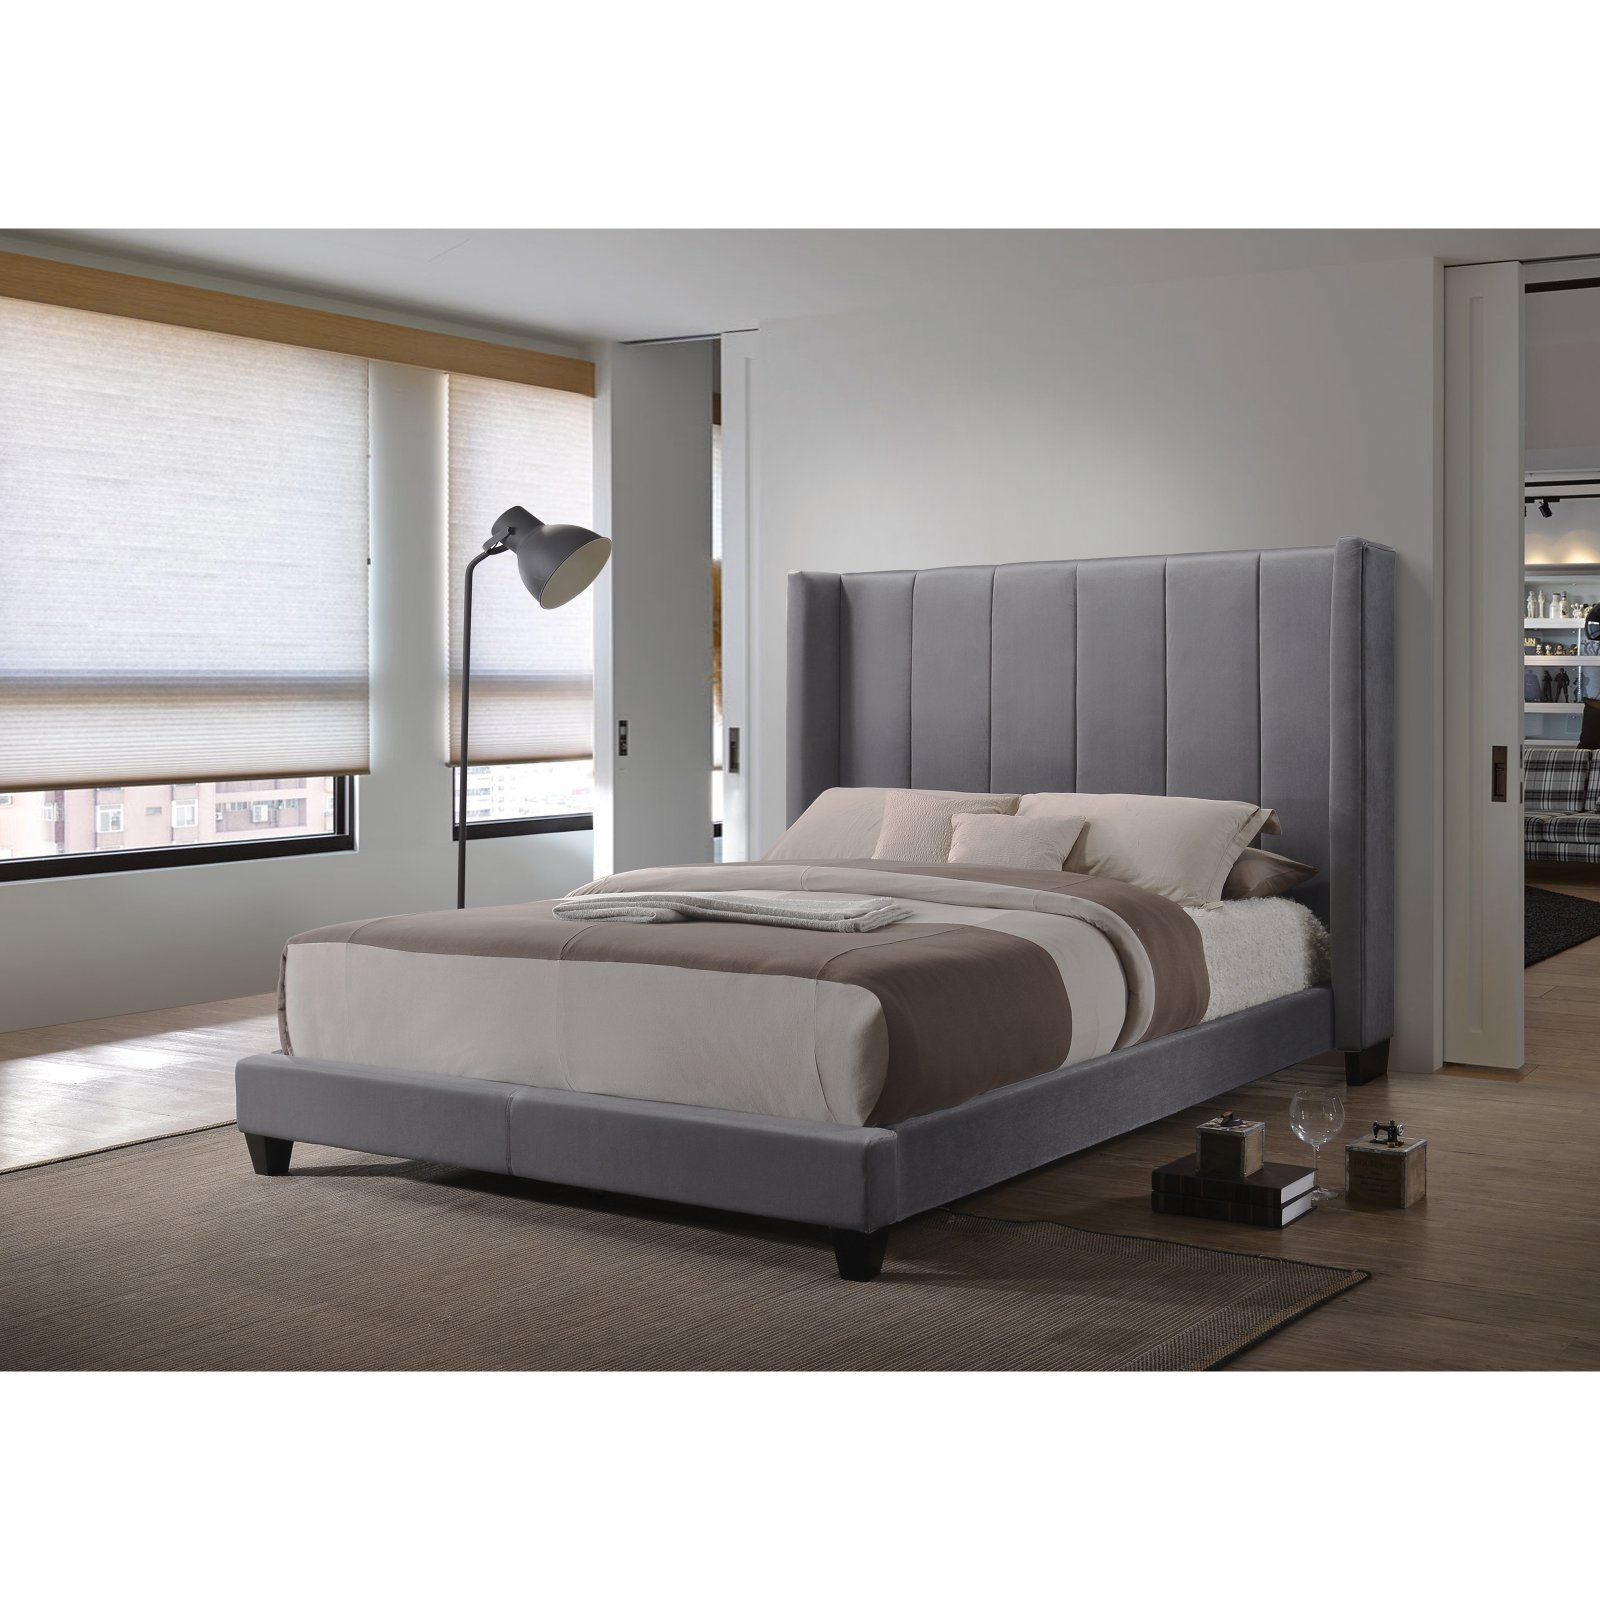 Coaster Furniture Hudson Upholstered Bed Size Twin Products In